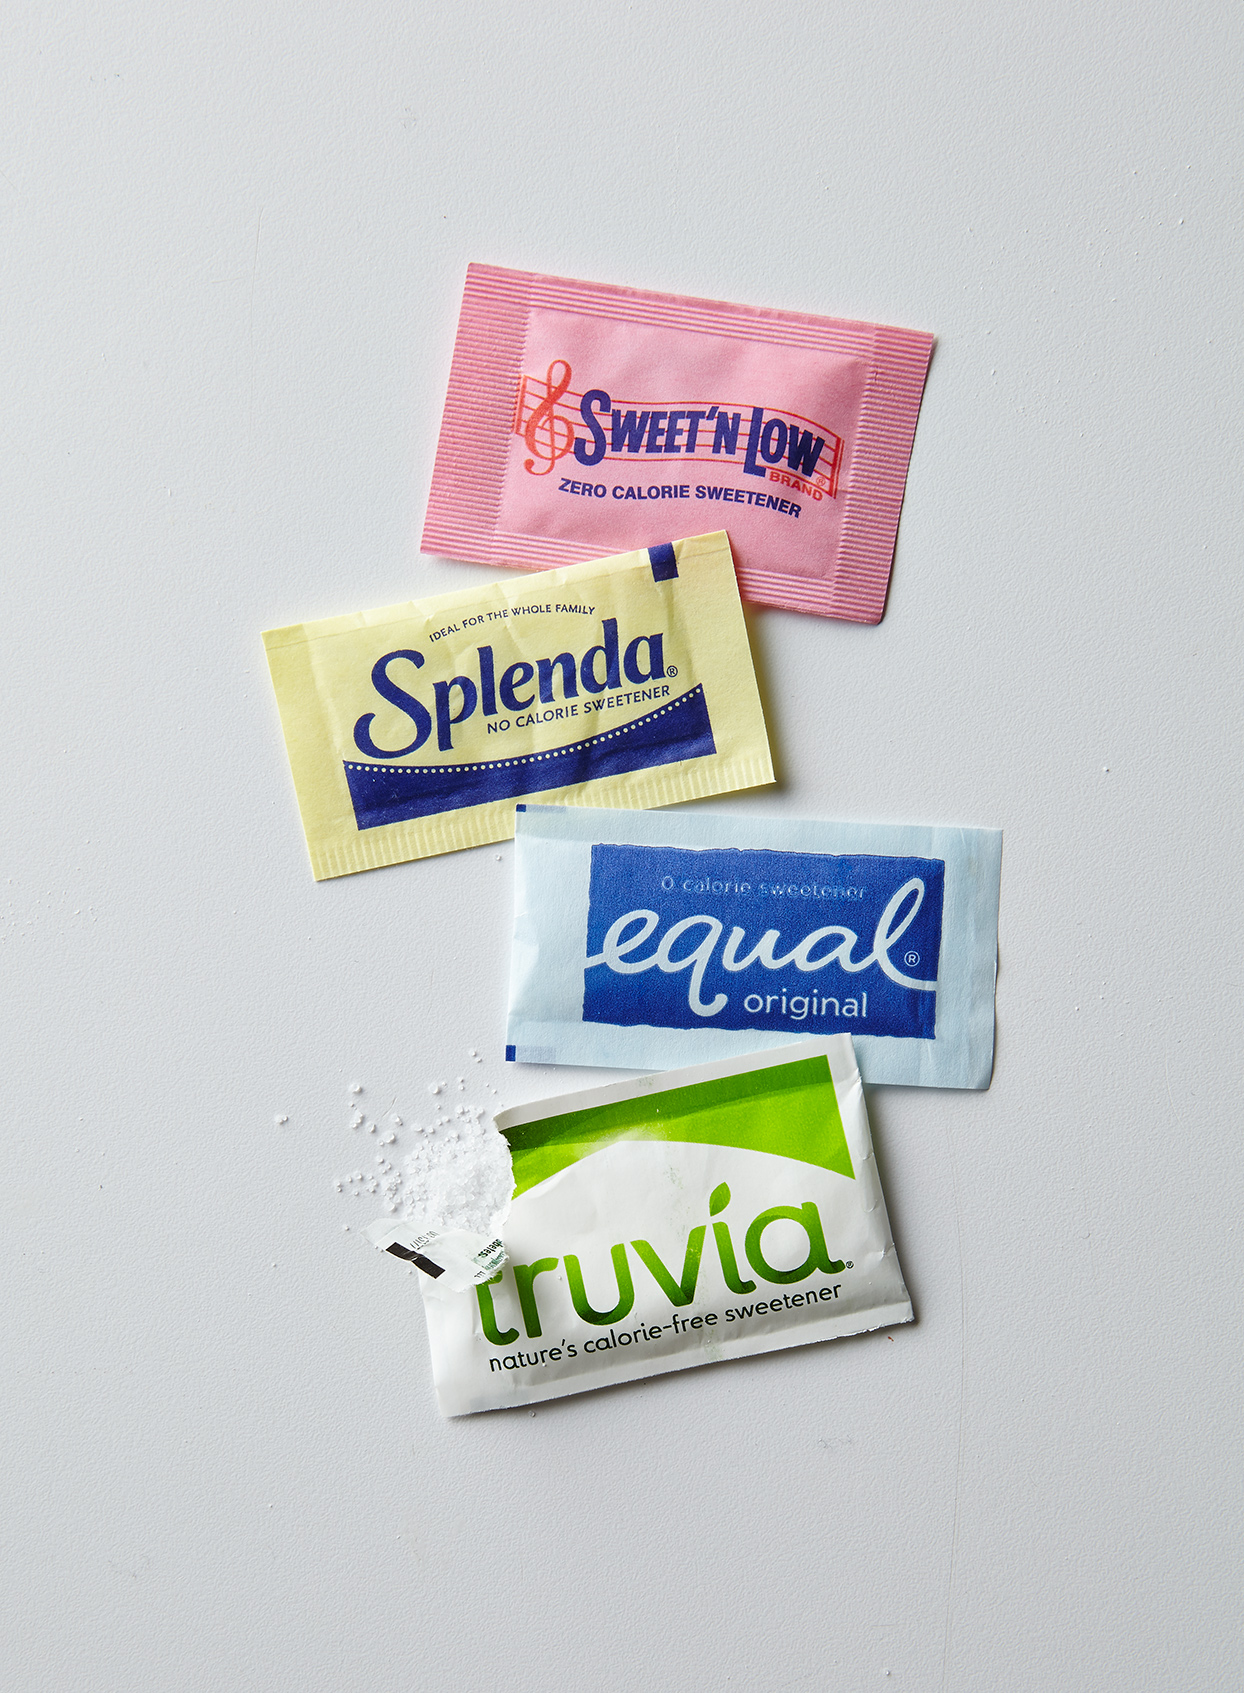 Sugar substitute packets including Equal, Truvia, and Splenda on white background